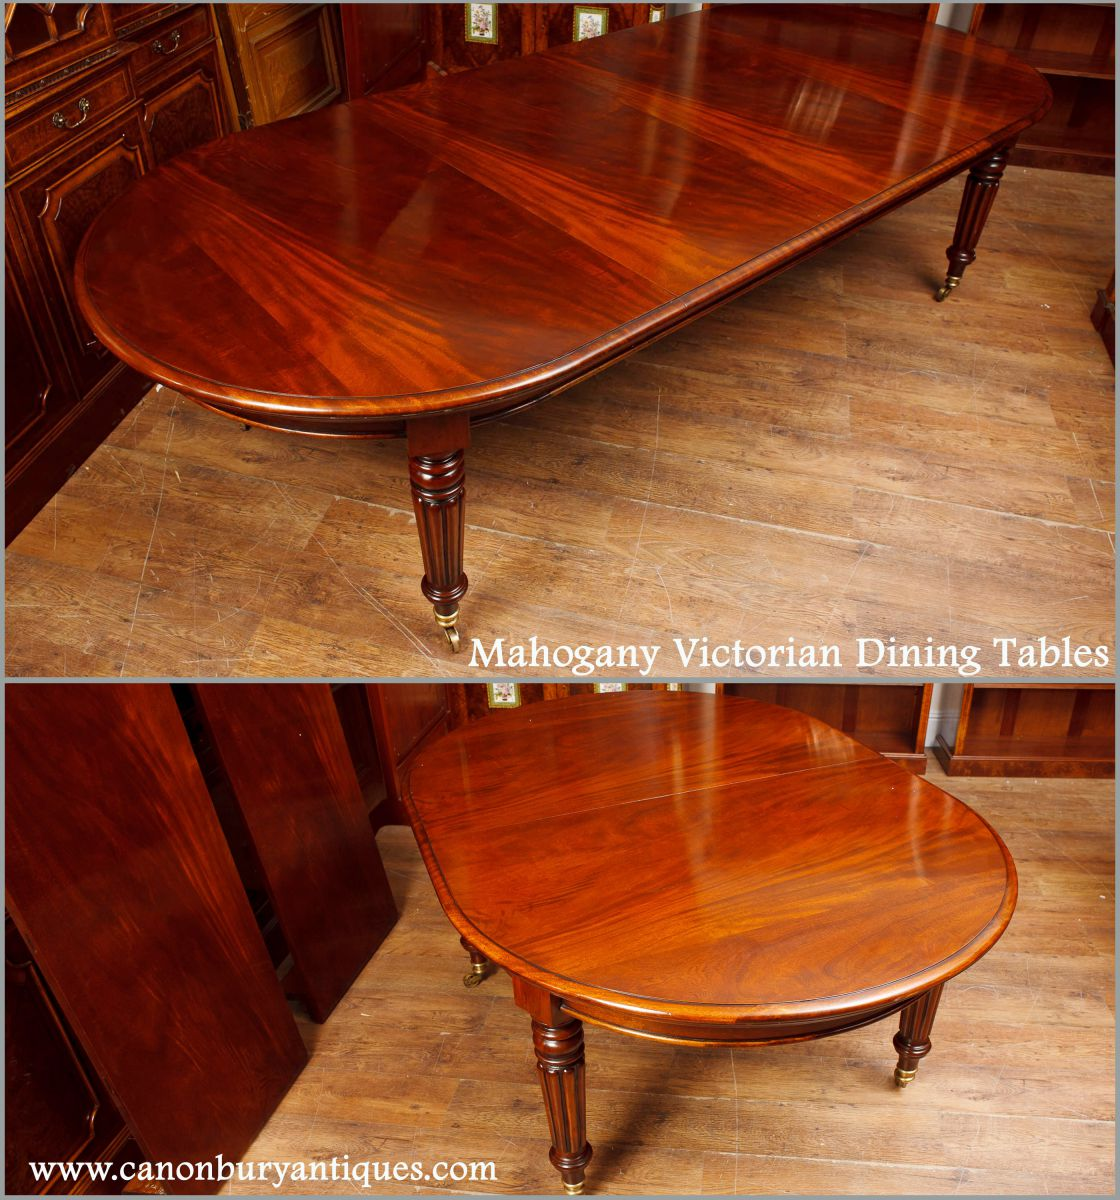 Large Victorian Dining Room: Mahogany Victorian Dining Tables